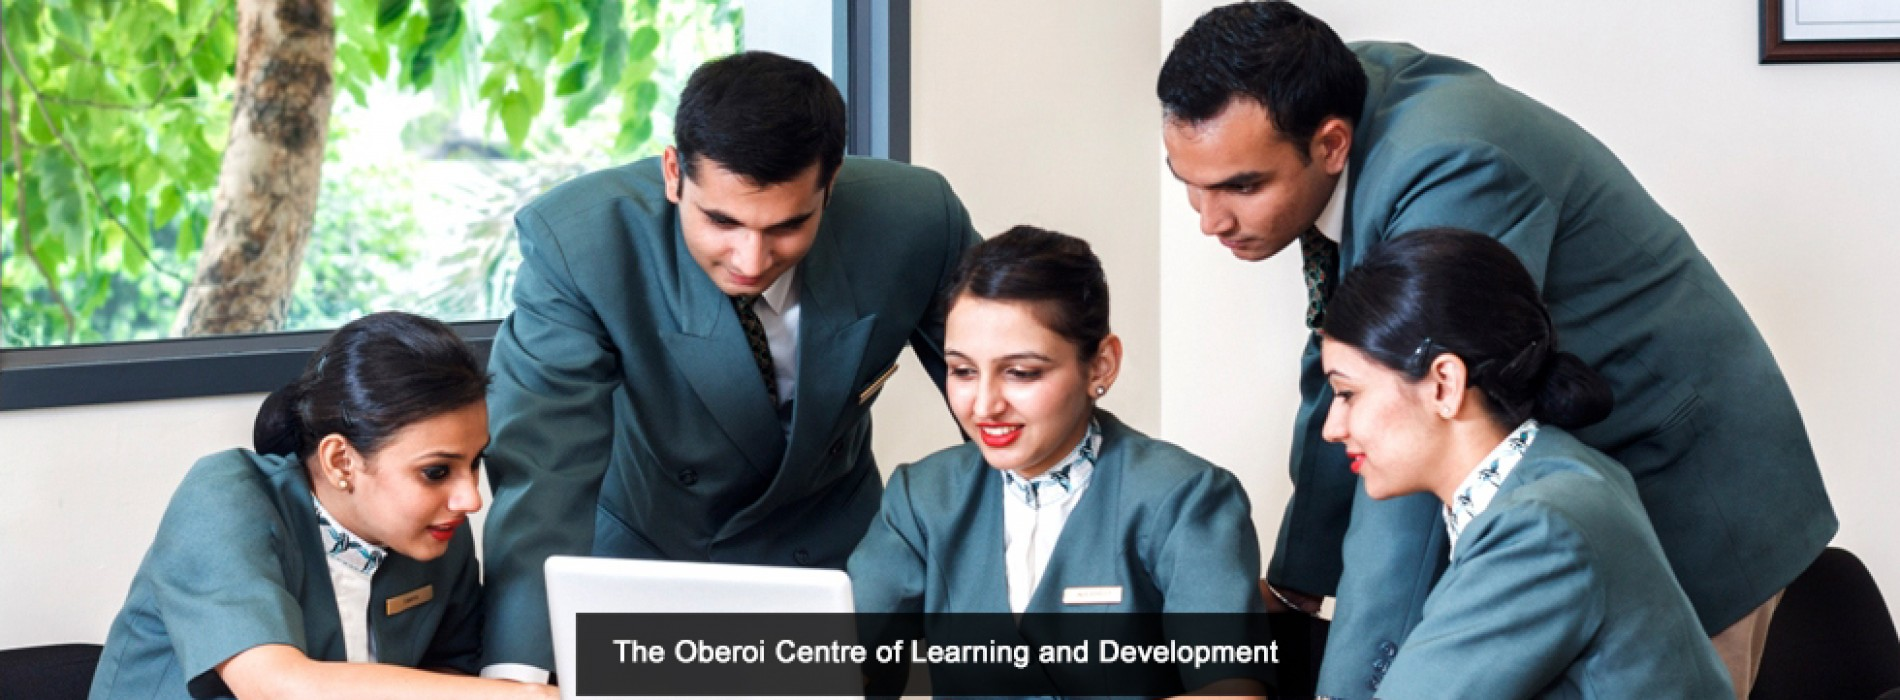 The Oberoi Group commences selection process for its 'Post Graduate Management Programmes'